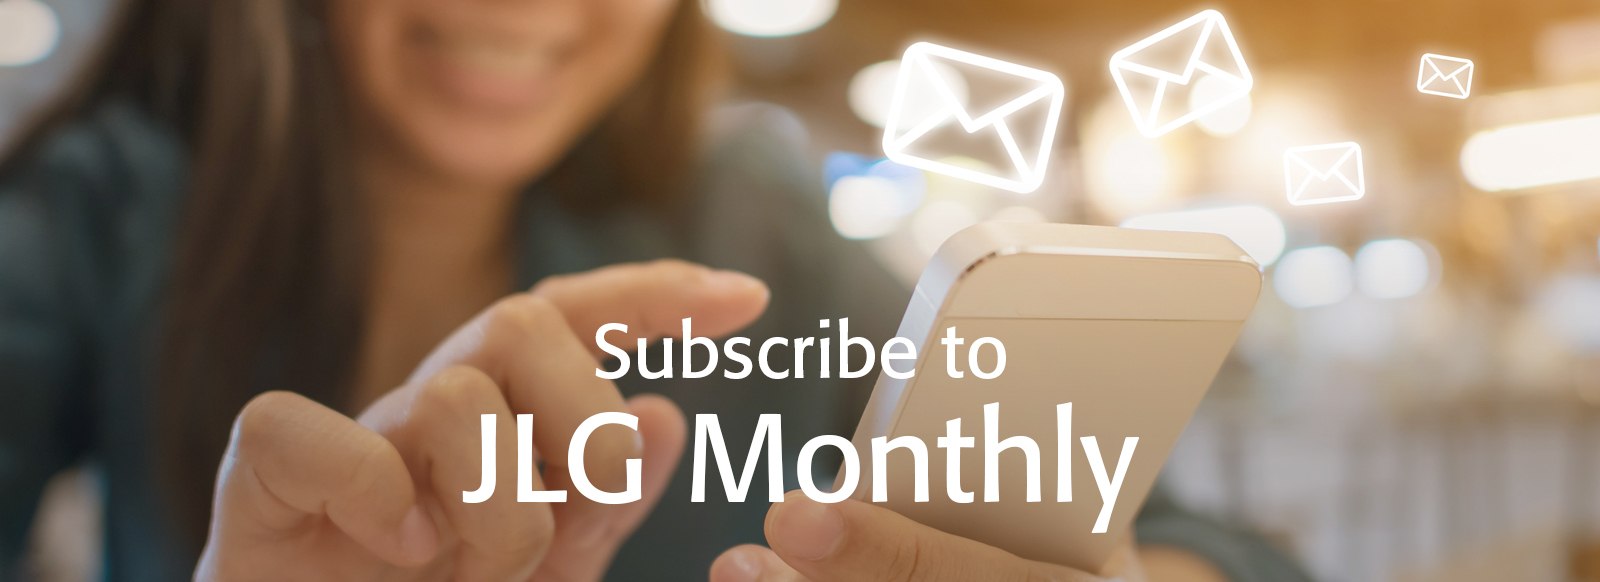 Subscribe to JLG Monthly